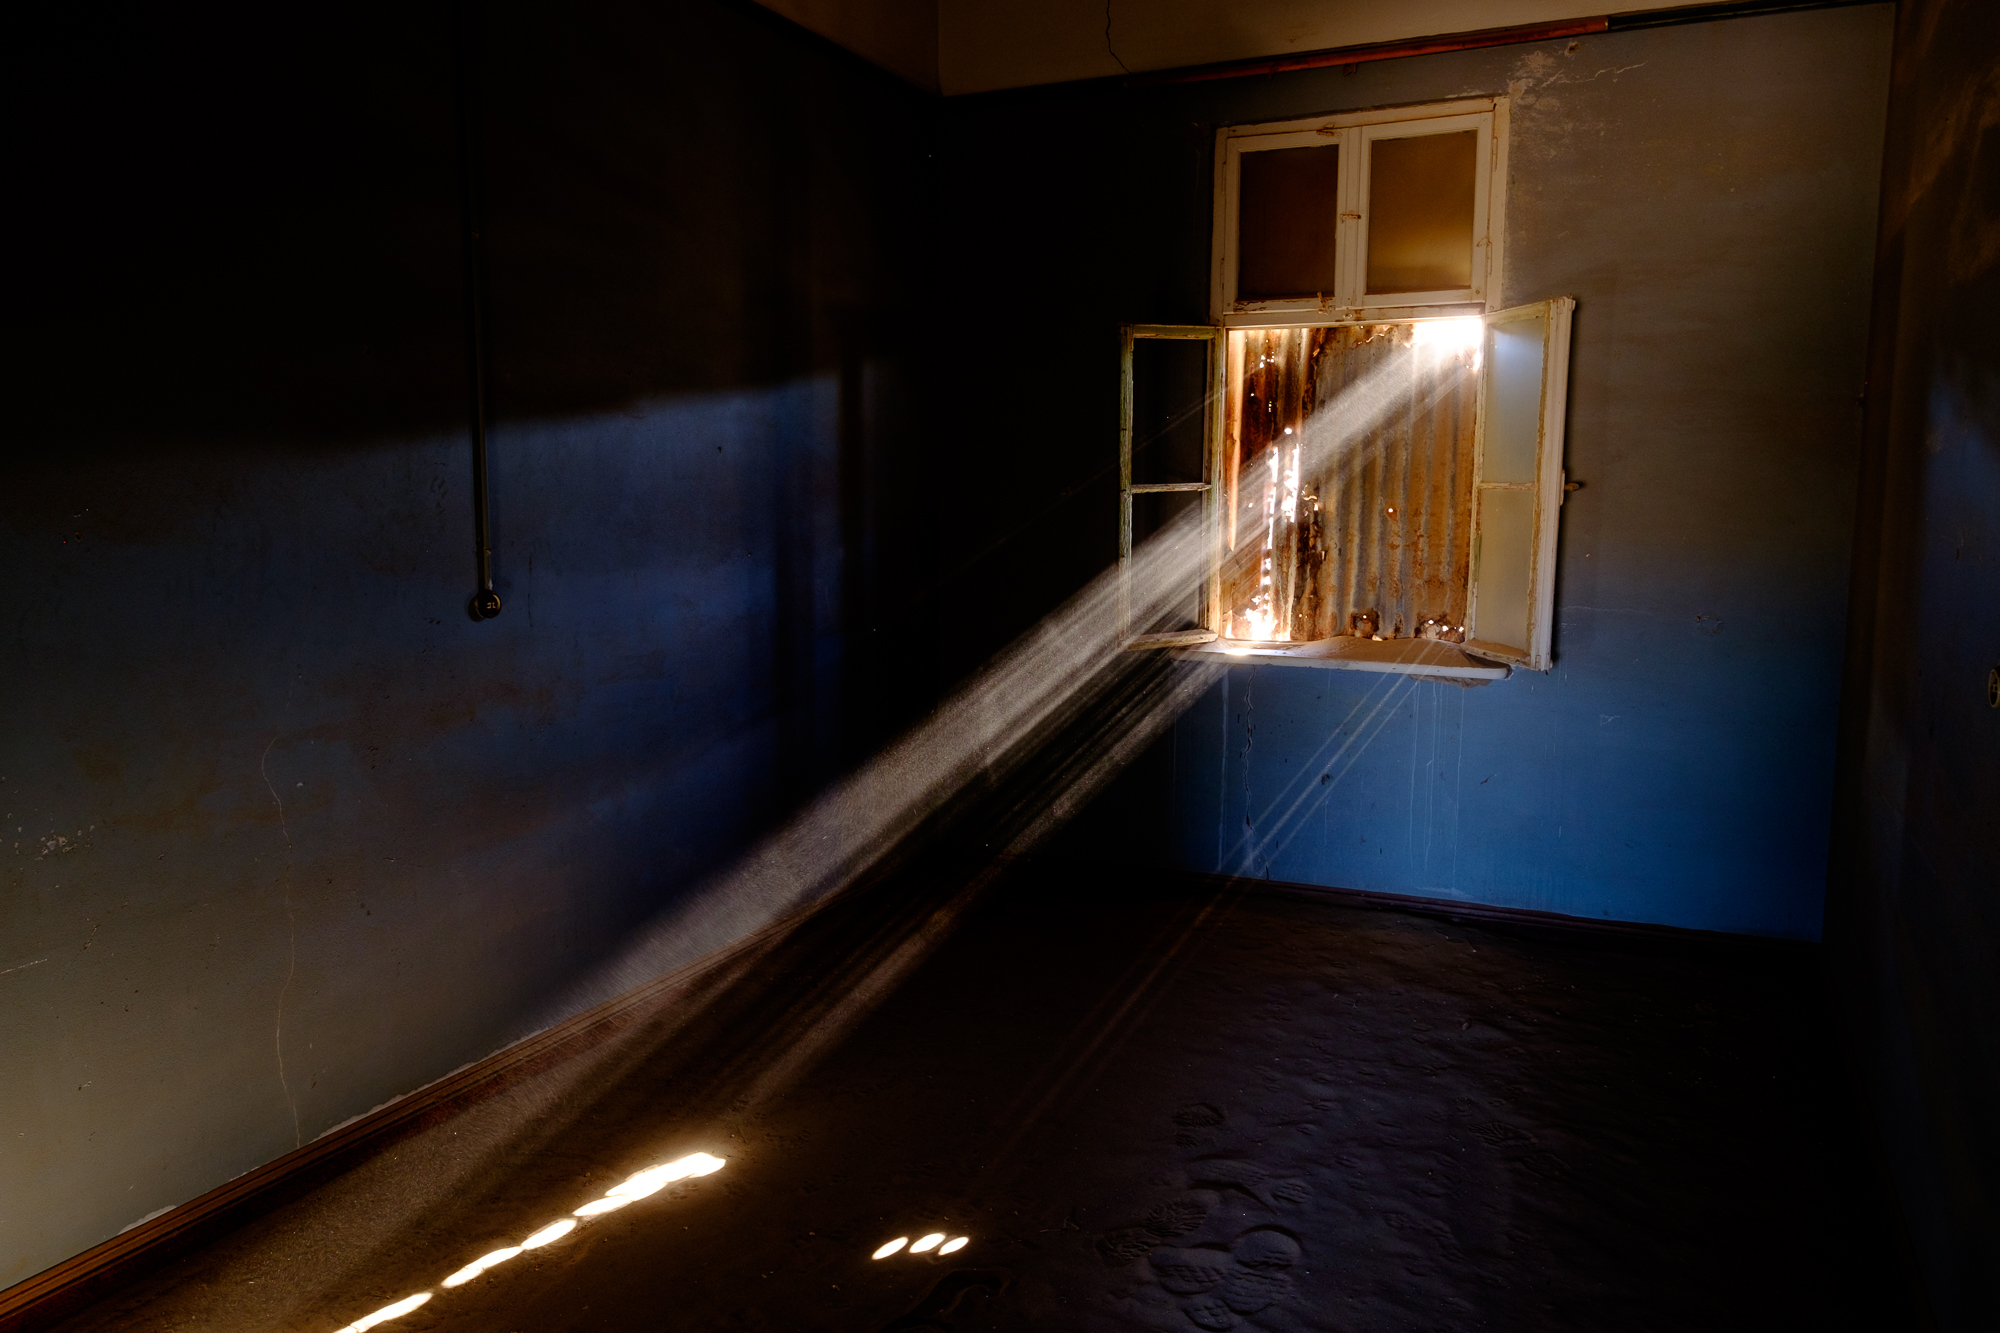 Light beams through rusted iron boarding up the window of this room in the school